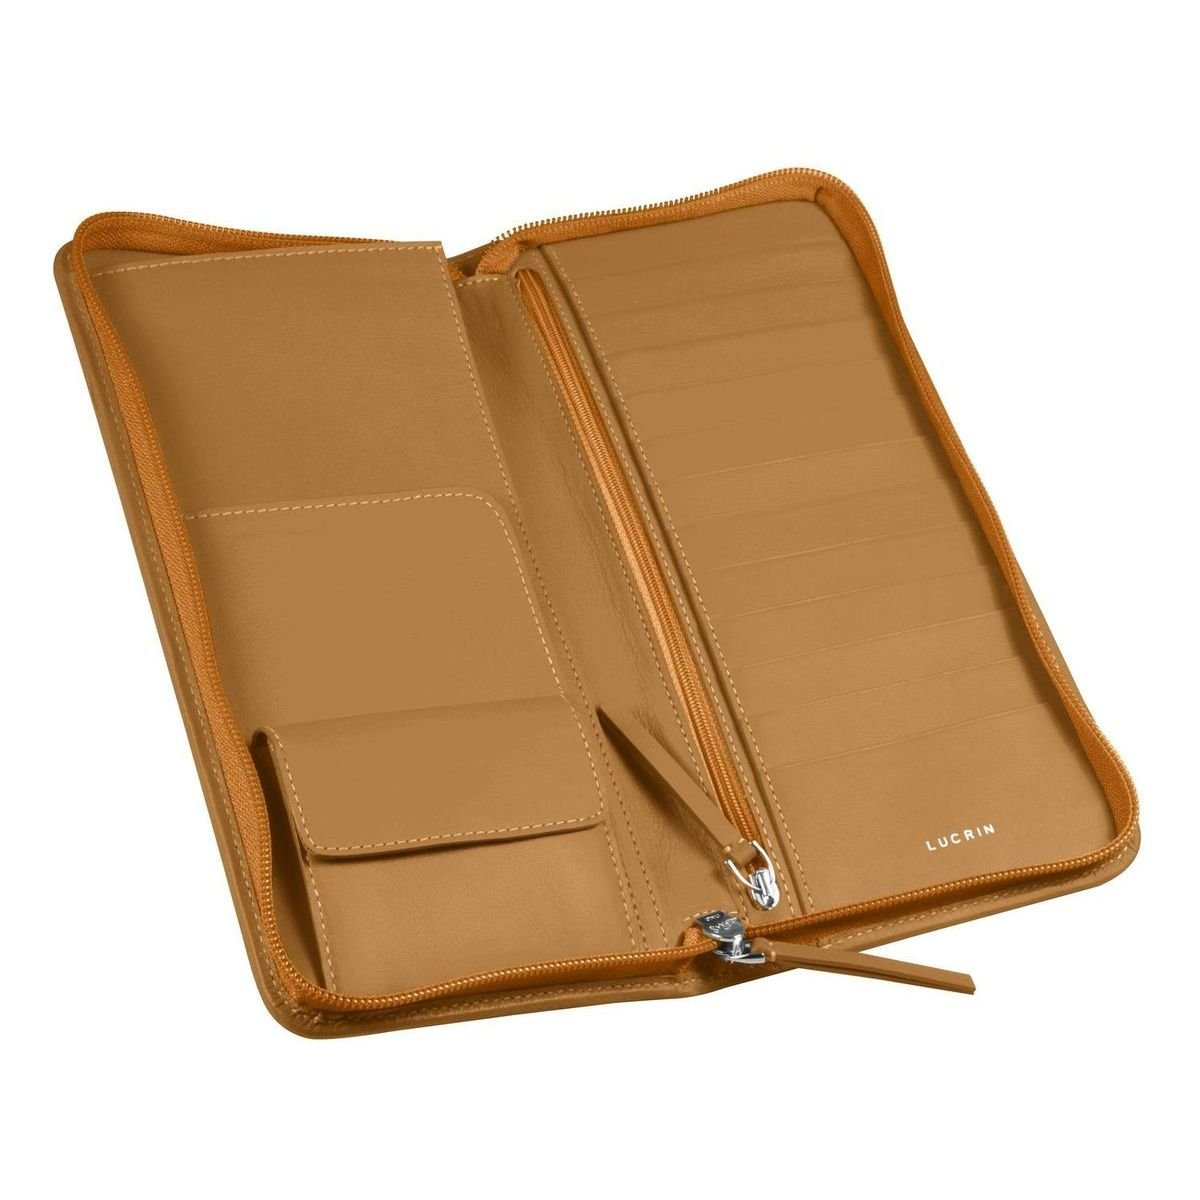 Lucrin - Deluxe travel wallet - Natural - Smooth Leather by Lucrin